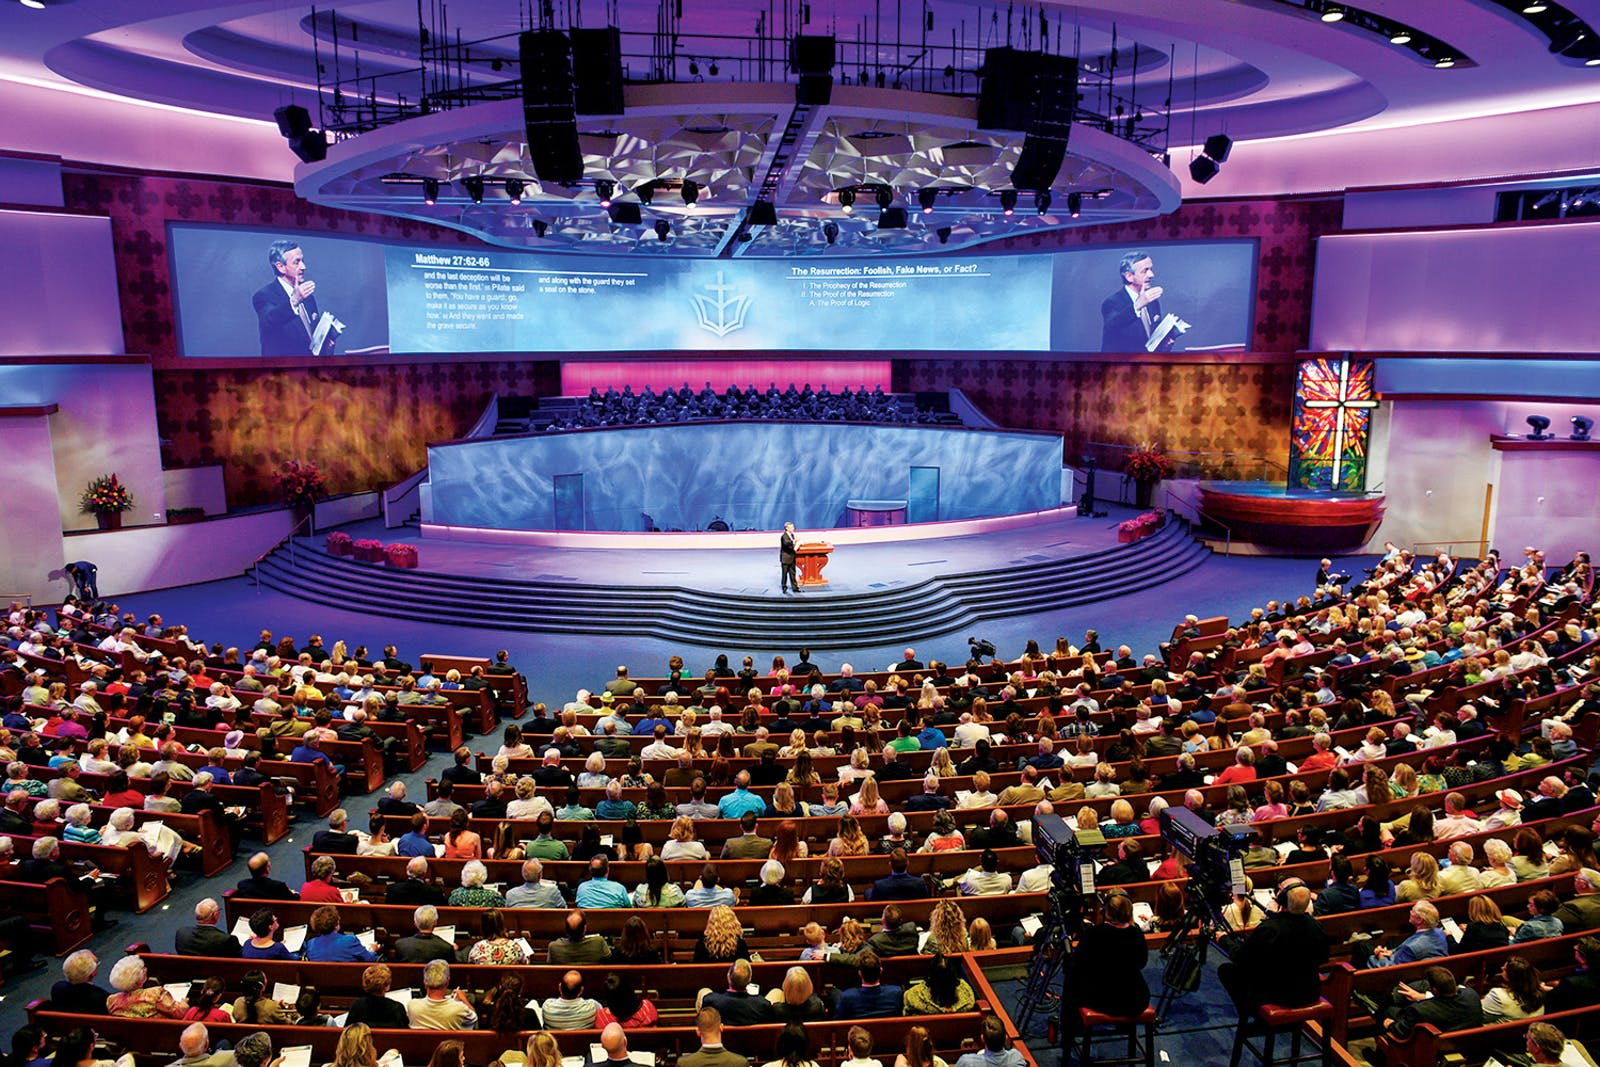 Jeffress preaching at First Baptist Dallas